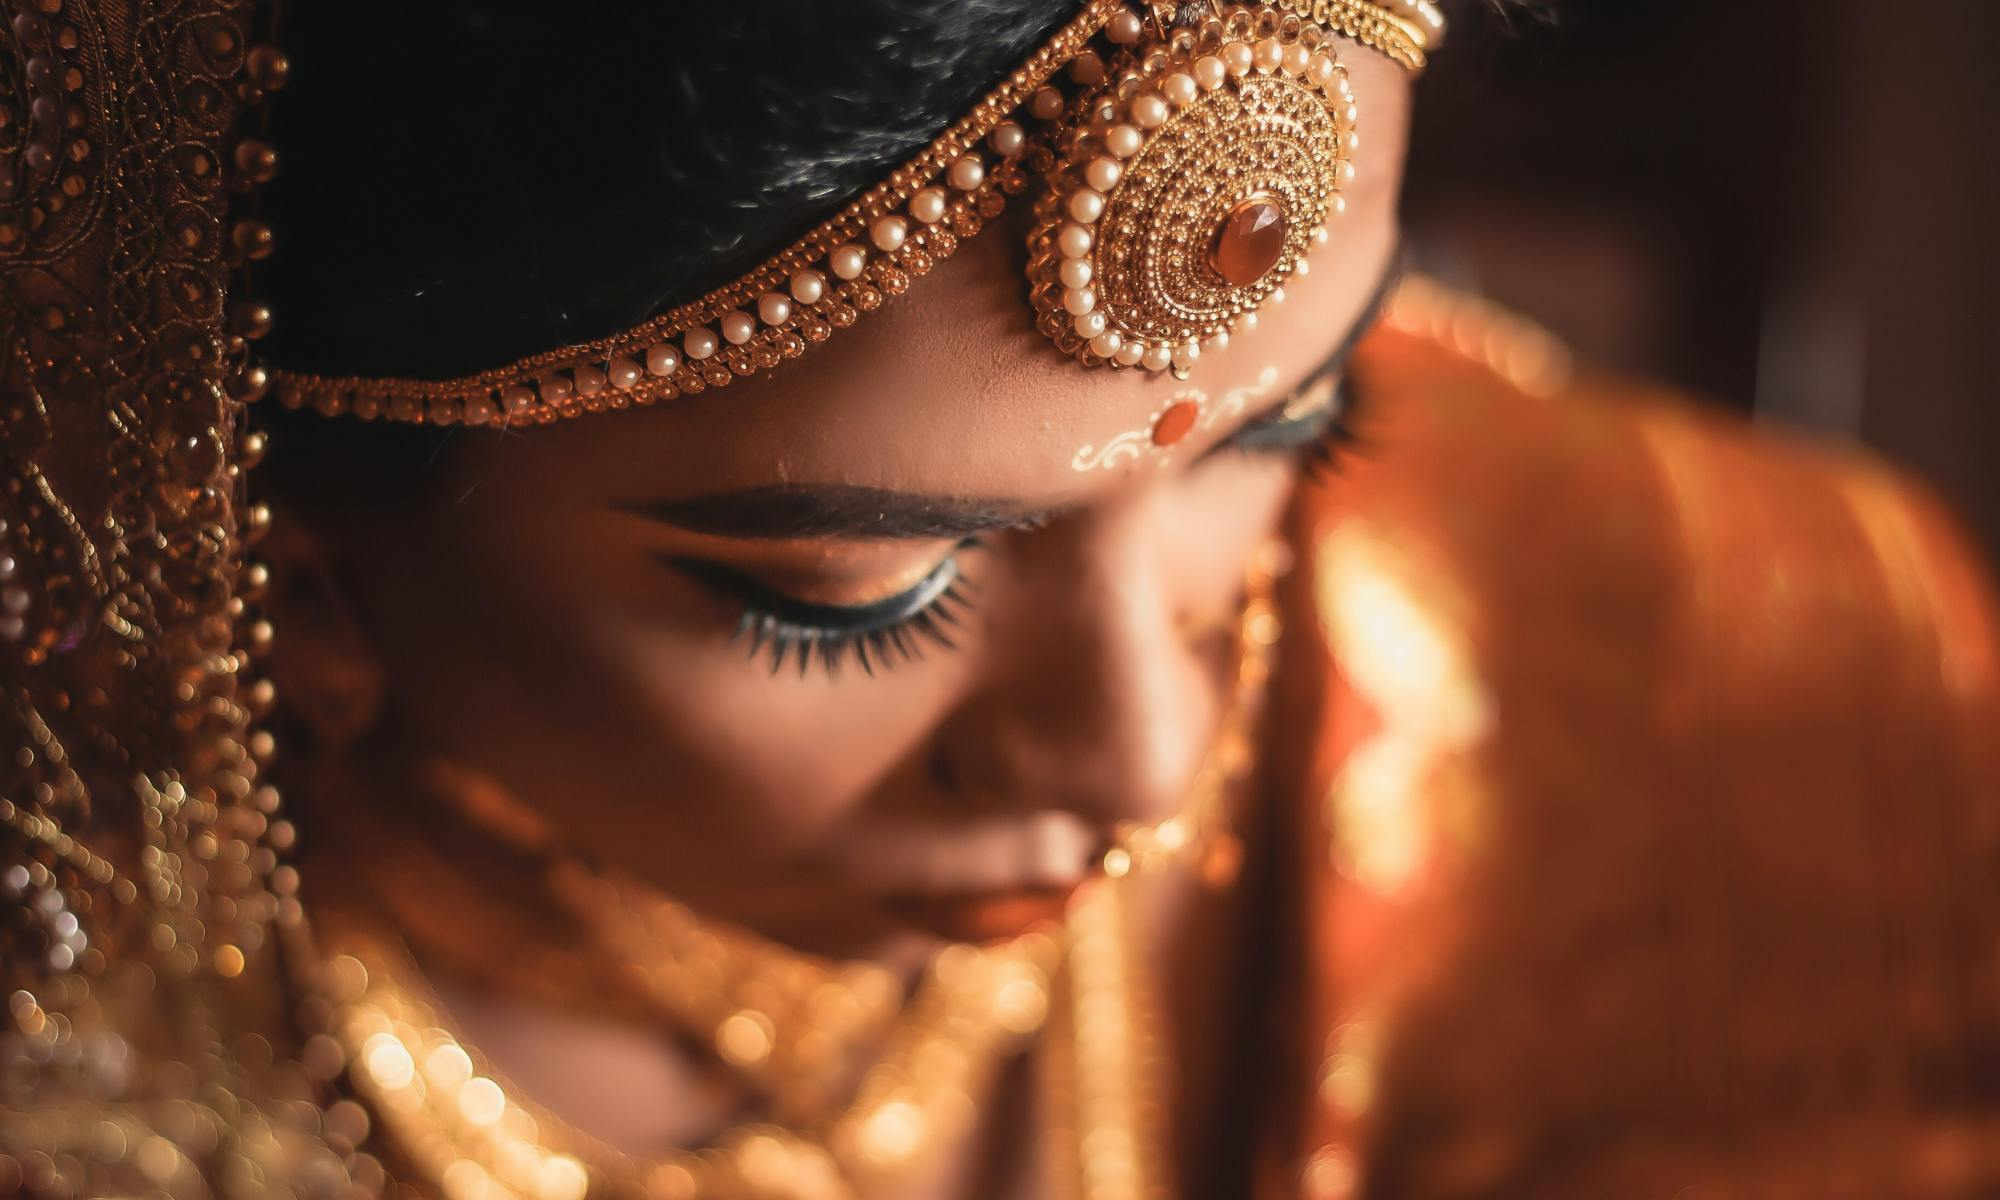 An Indian girl dressed in bridal finery, looking down, eyes, shielded, but standing tall